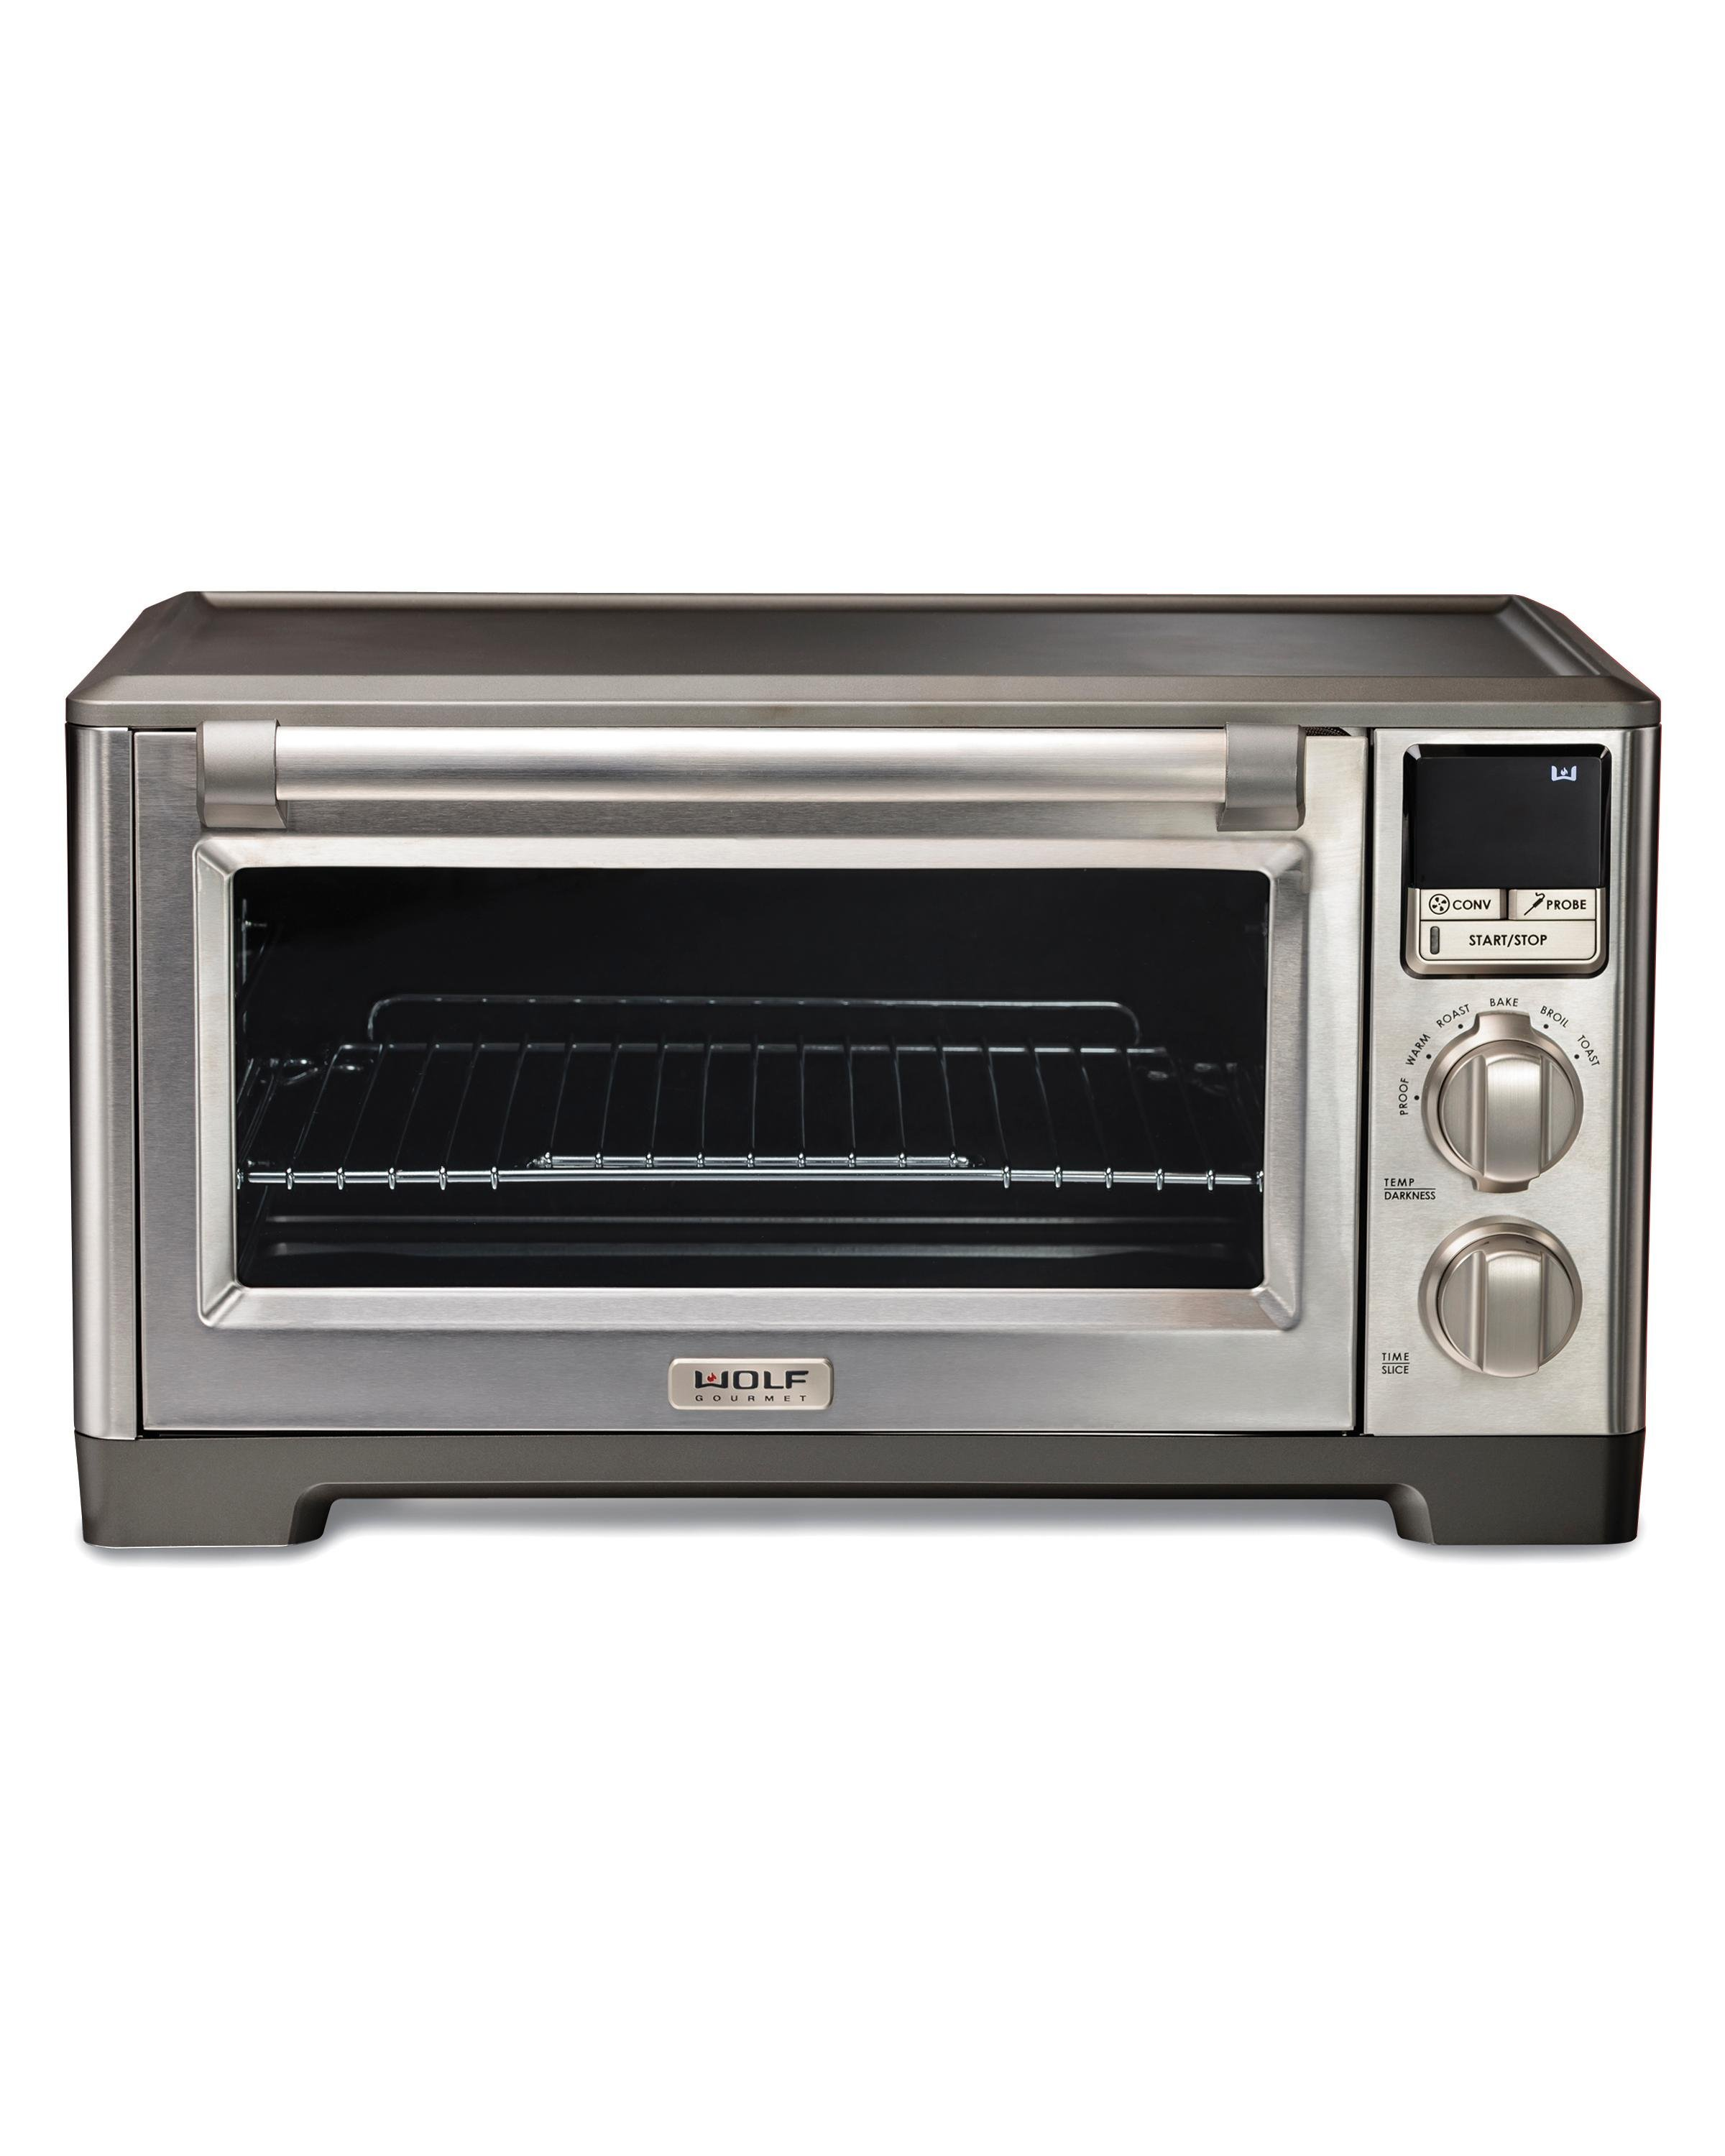 Wolf Gourmet Countertop Convection Oven : Amazon.com: Wolf Gourmet Countertop Oven with Convection (WGCO100S ...